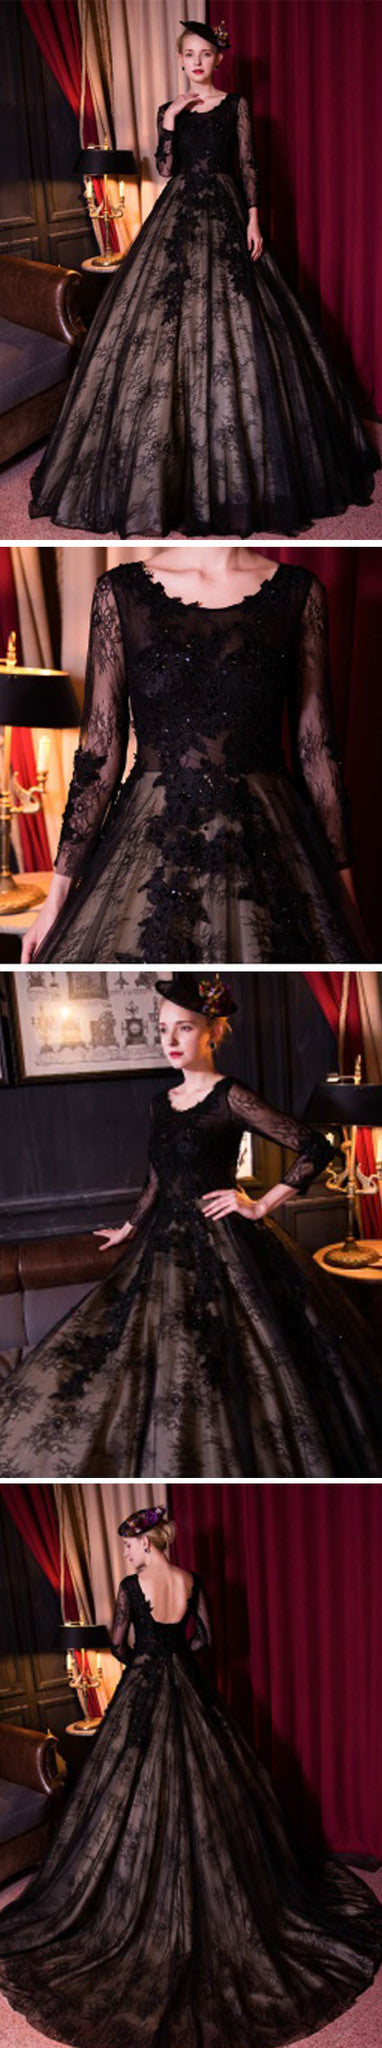 Special Black Tulle Lace Scoop Neck Long Sleeve A-line Ball Gown Prom Dress Wedding Dresses, WD166